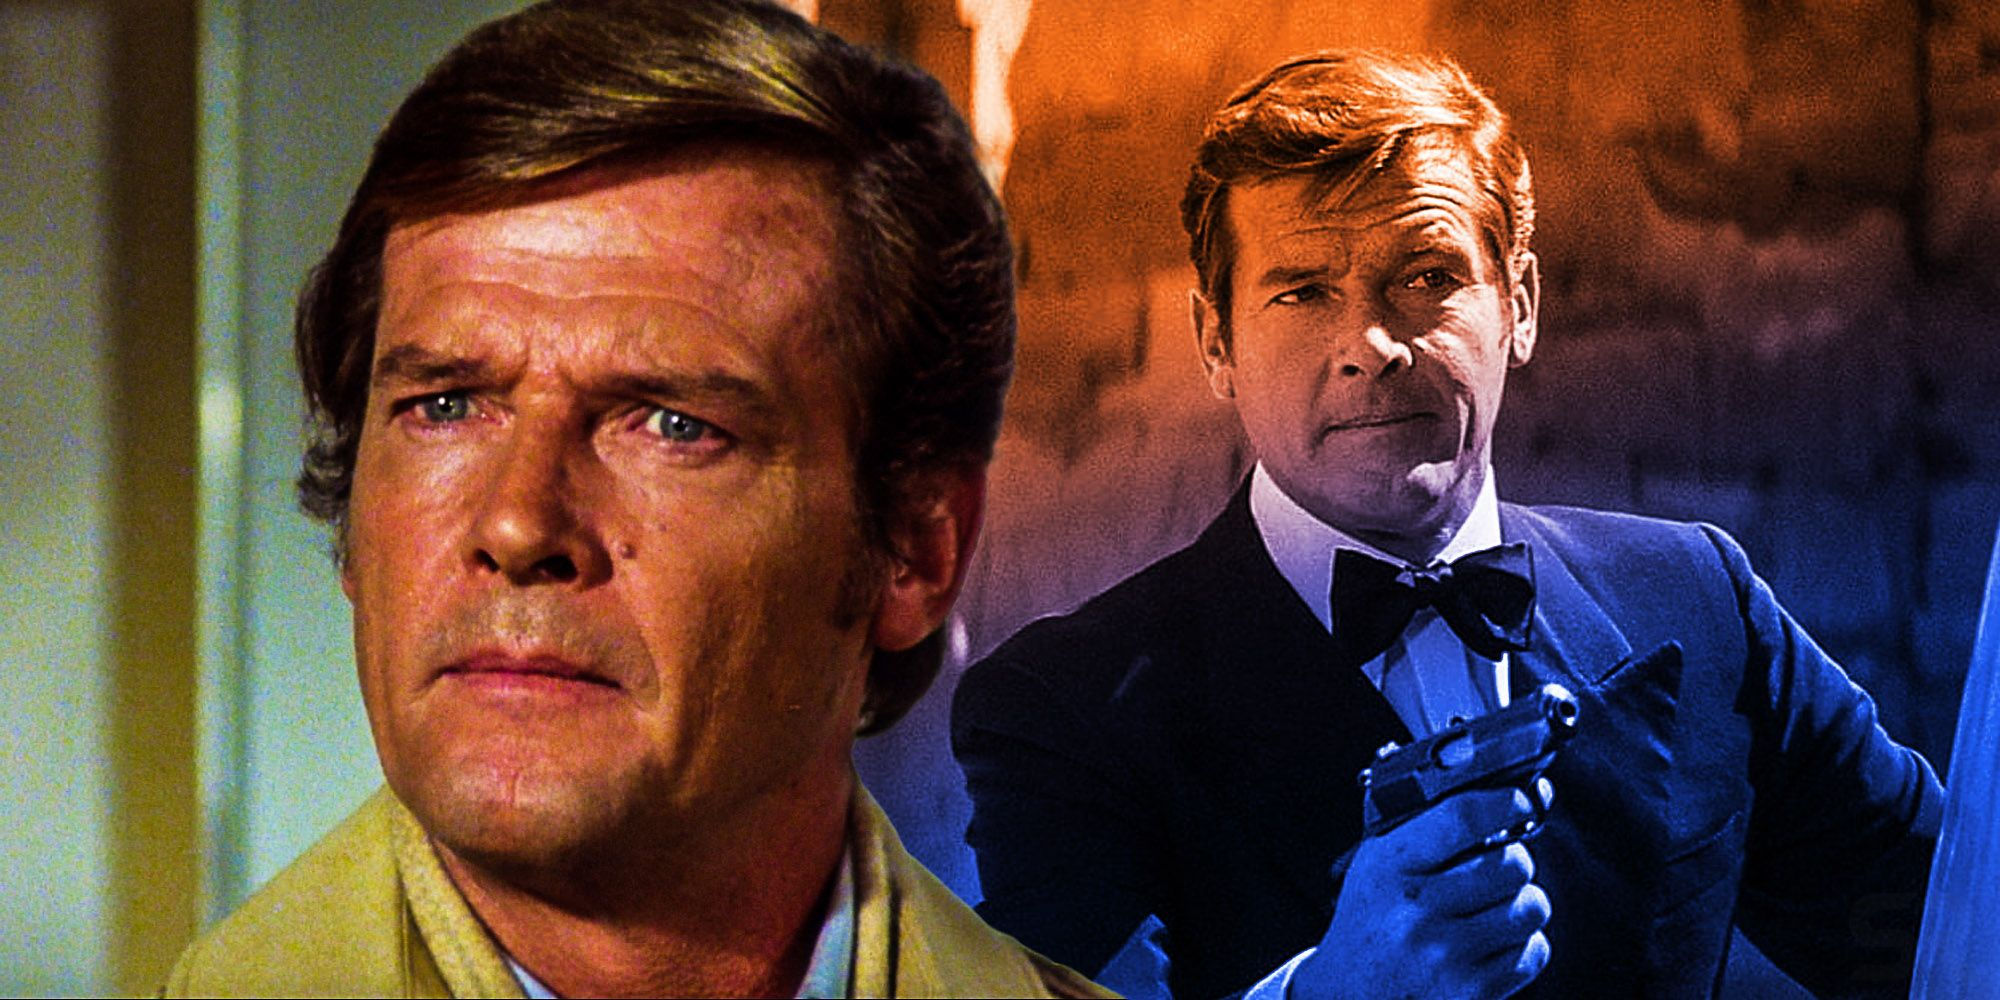 The Roger Moore Performance That Proved He Could Have Played A Darker Bond